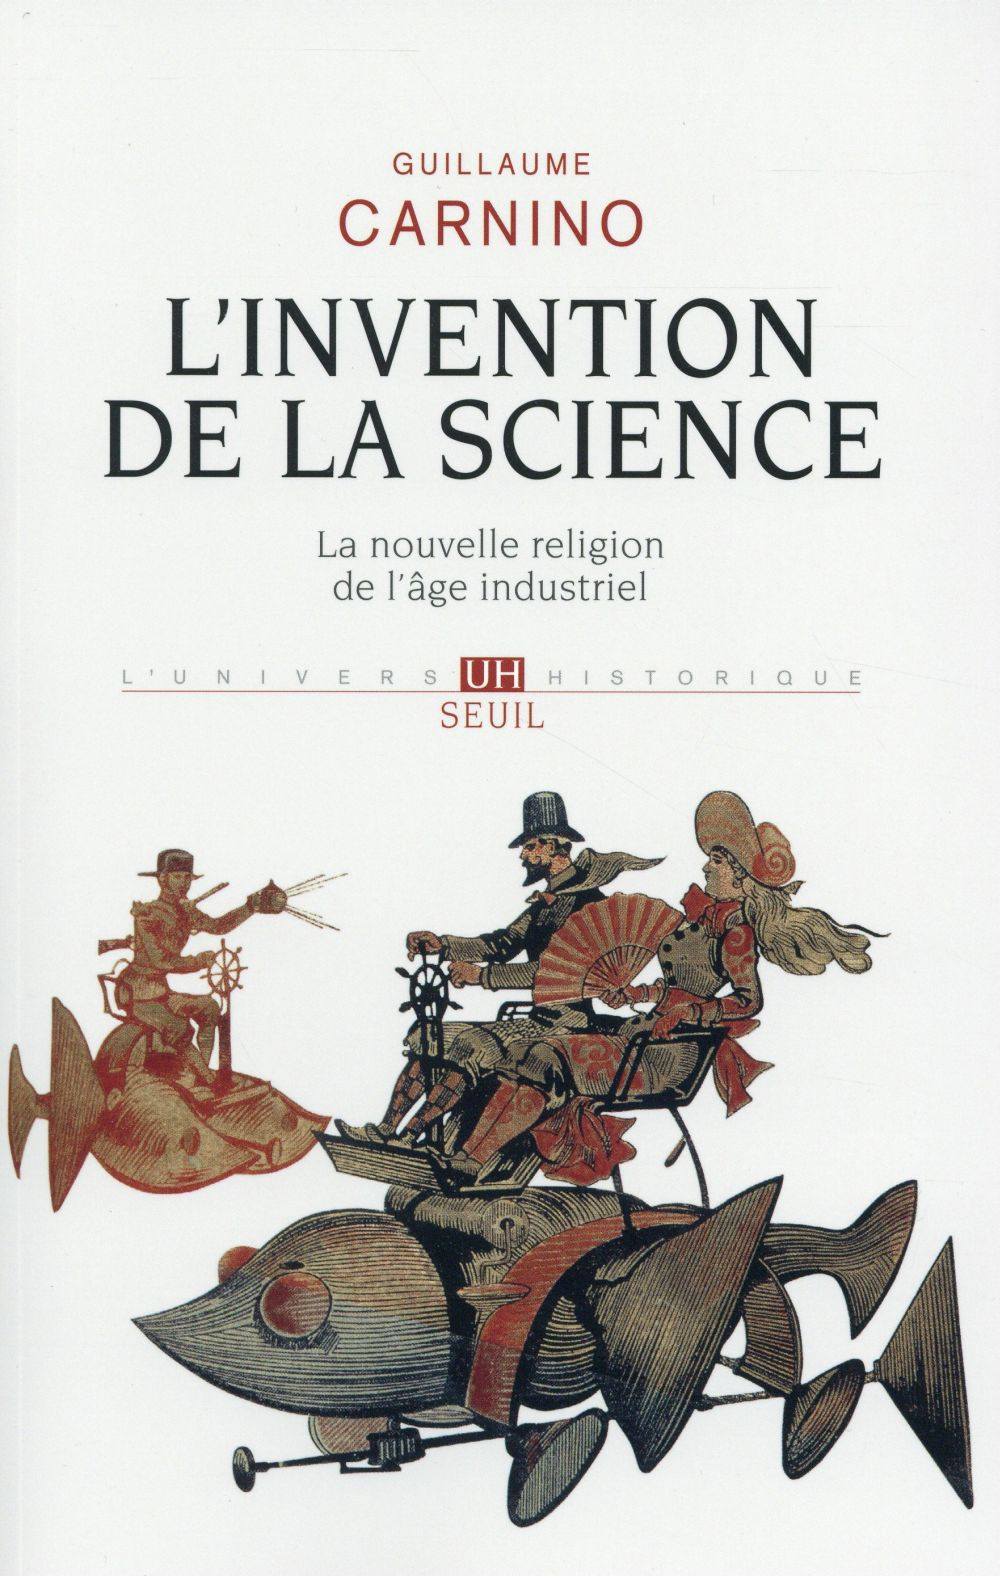 L'INVENTION DE LA SCIENCE. LA NOUVELLE RELIGION DE L'AGE INDUSTRIEL